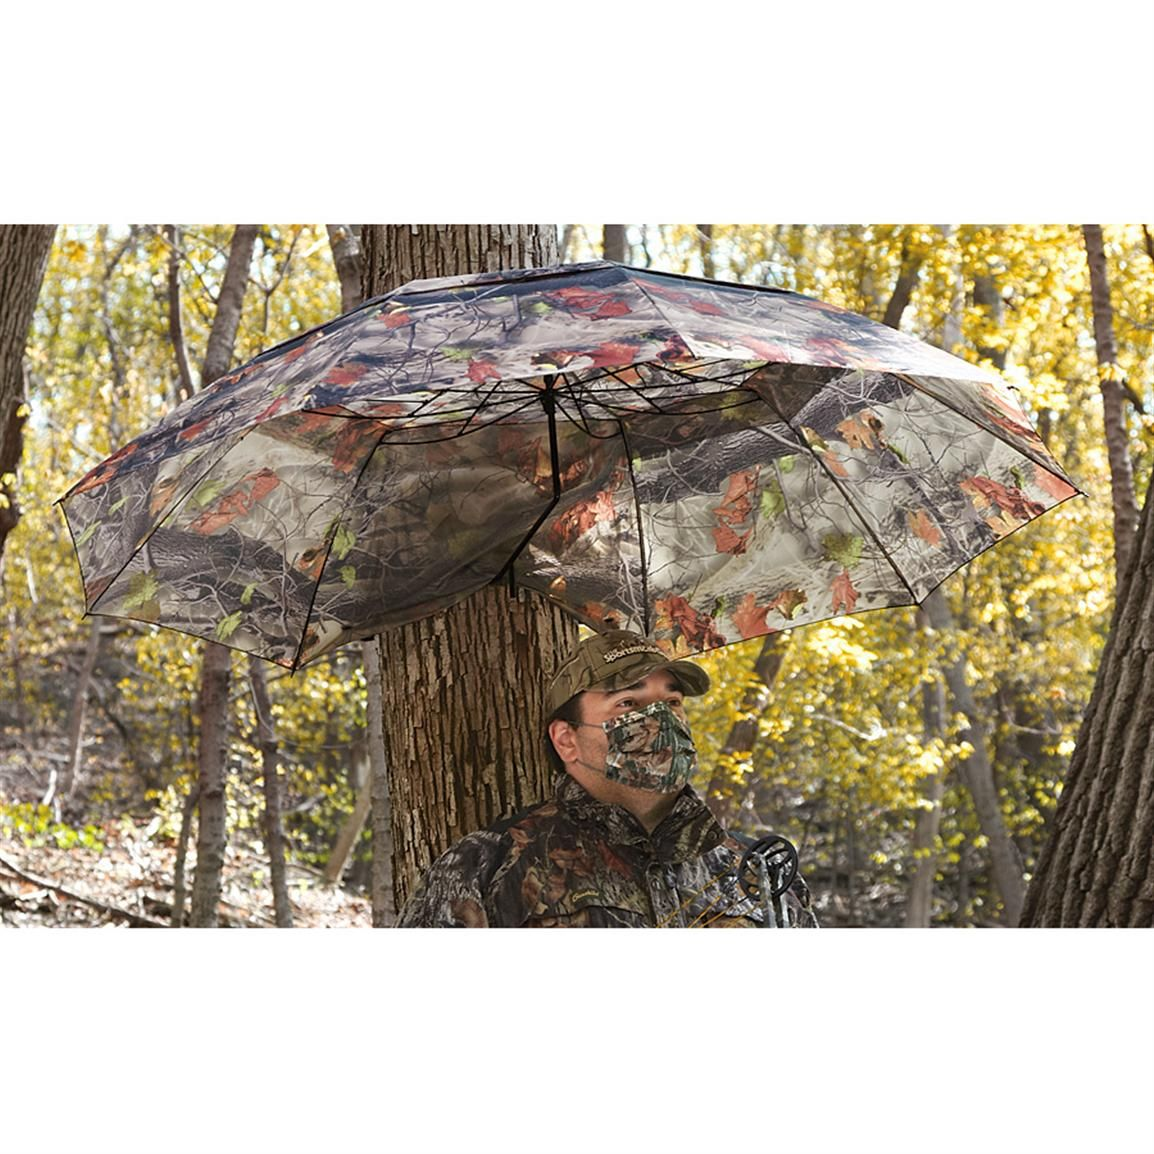 Guide Gear Camo Umbrella Blind 222210 Ground Blinds At Sportsman S Guide Ground Blinds Umbrella Fishing Umbrella